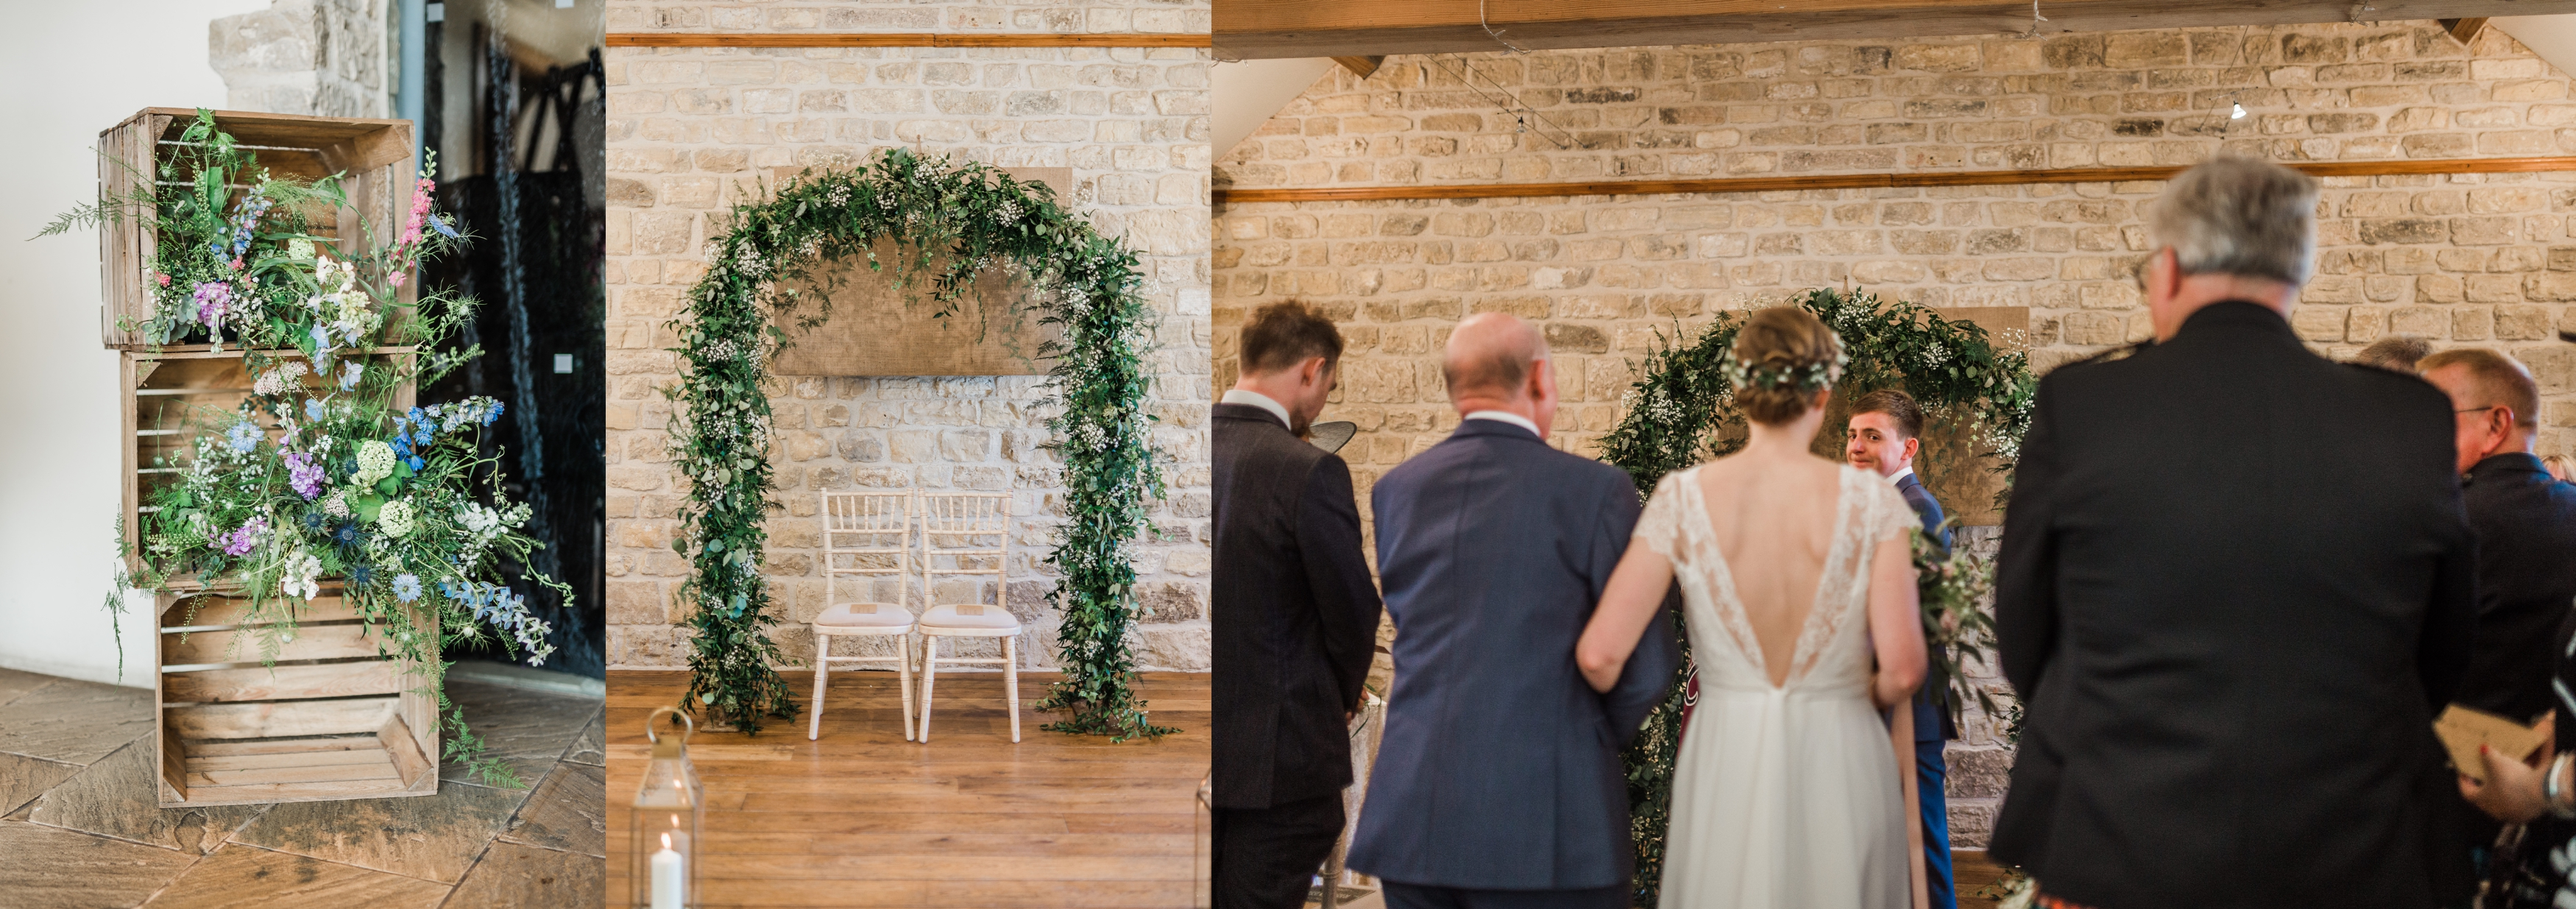 Civil Wedding Ceremony at Priory Cottages nr Wetherby